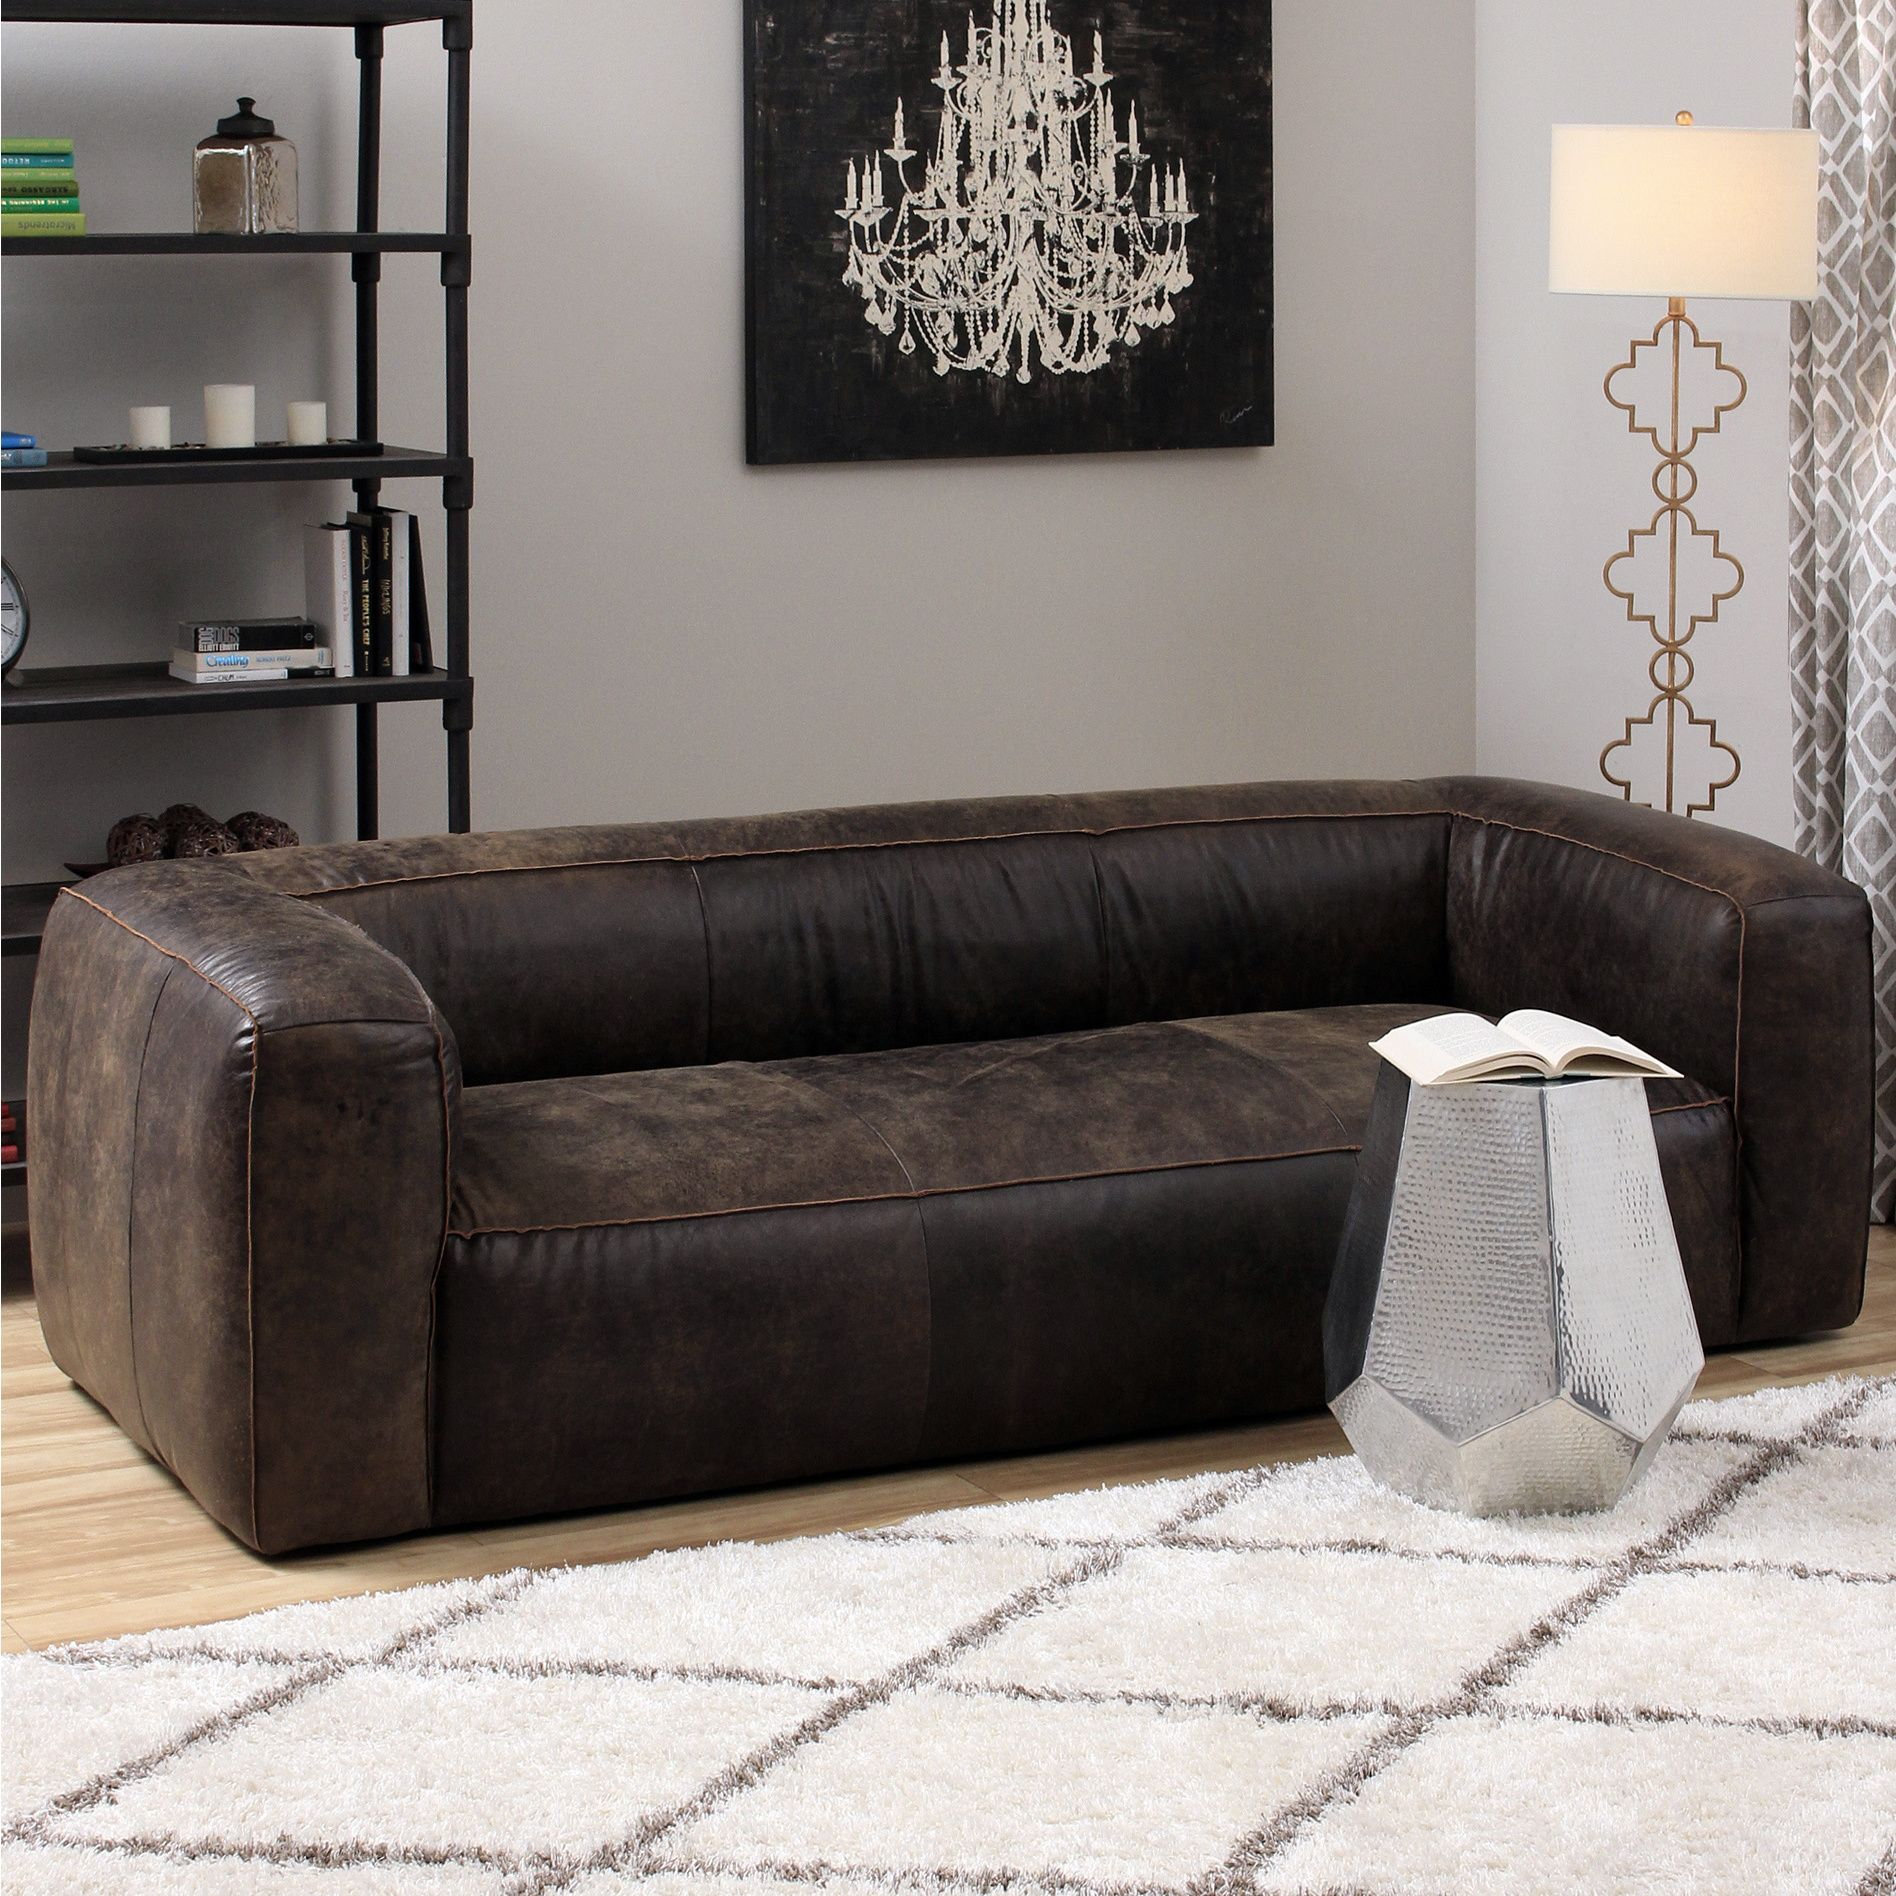 This Billowy Contemporary Sofa Is Composed Of Full Italian Leather With A Lovely Distressed Finish The Brown Leather Sofa Dark Brown Leather Sofa Leather Sofa